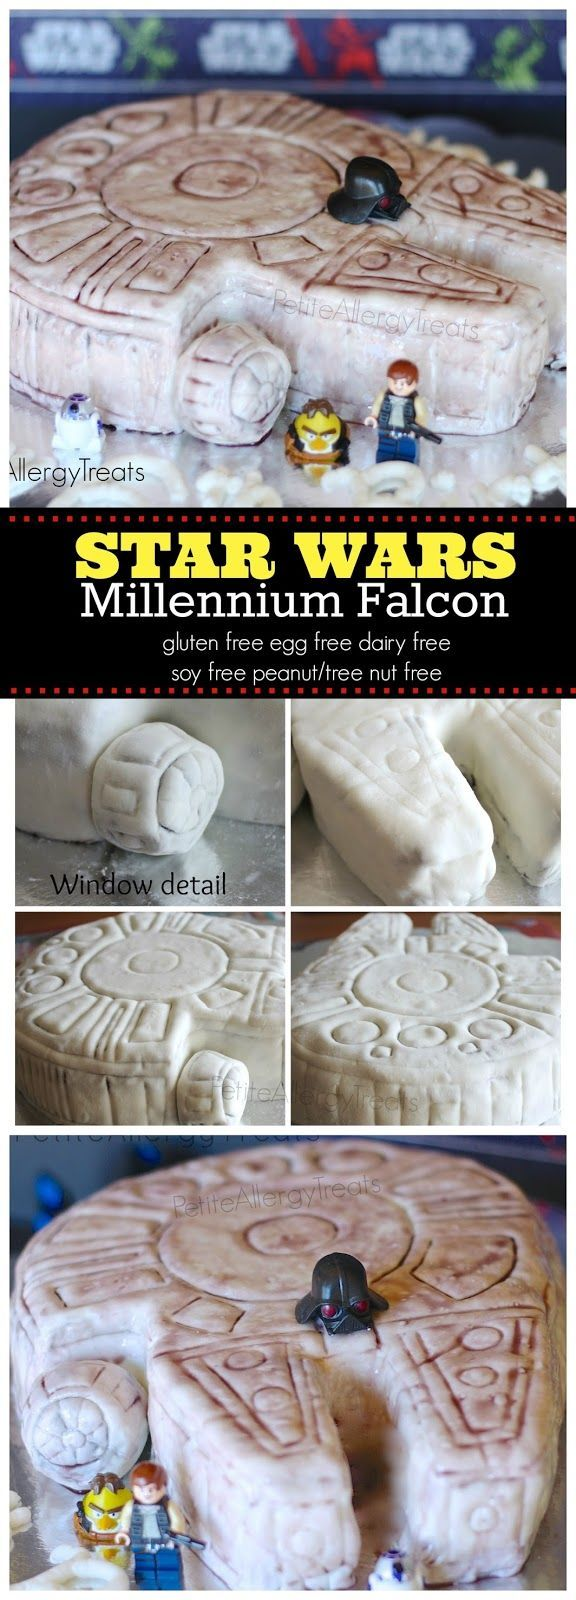 STAR WARS Ship CakeThis Millennium falcon cake will please any Star